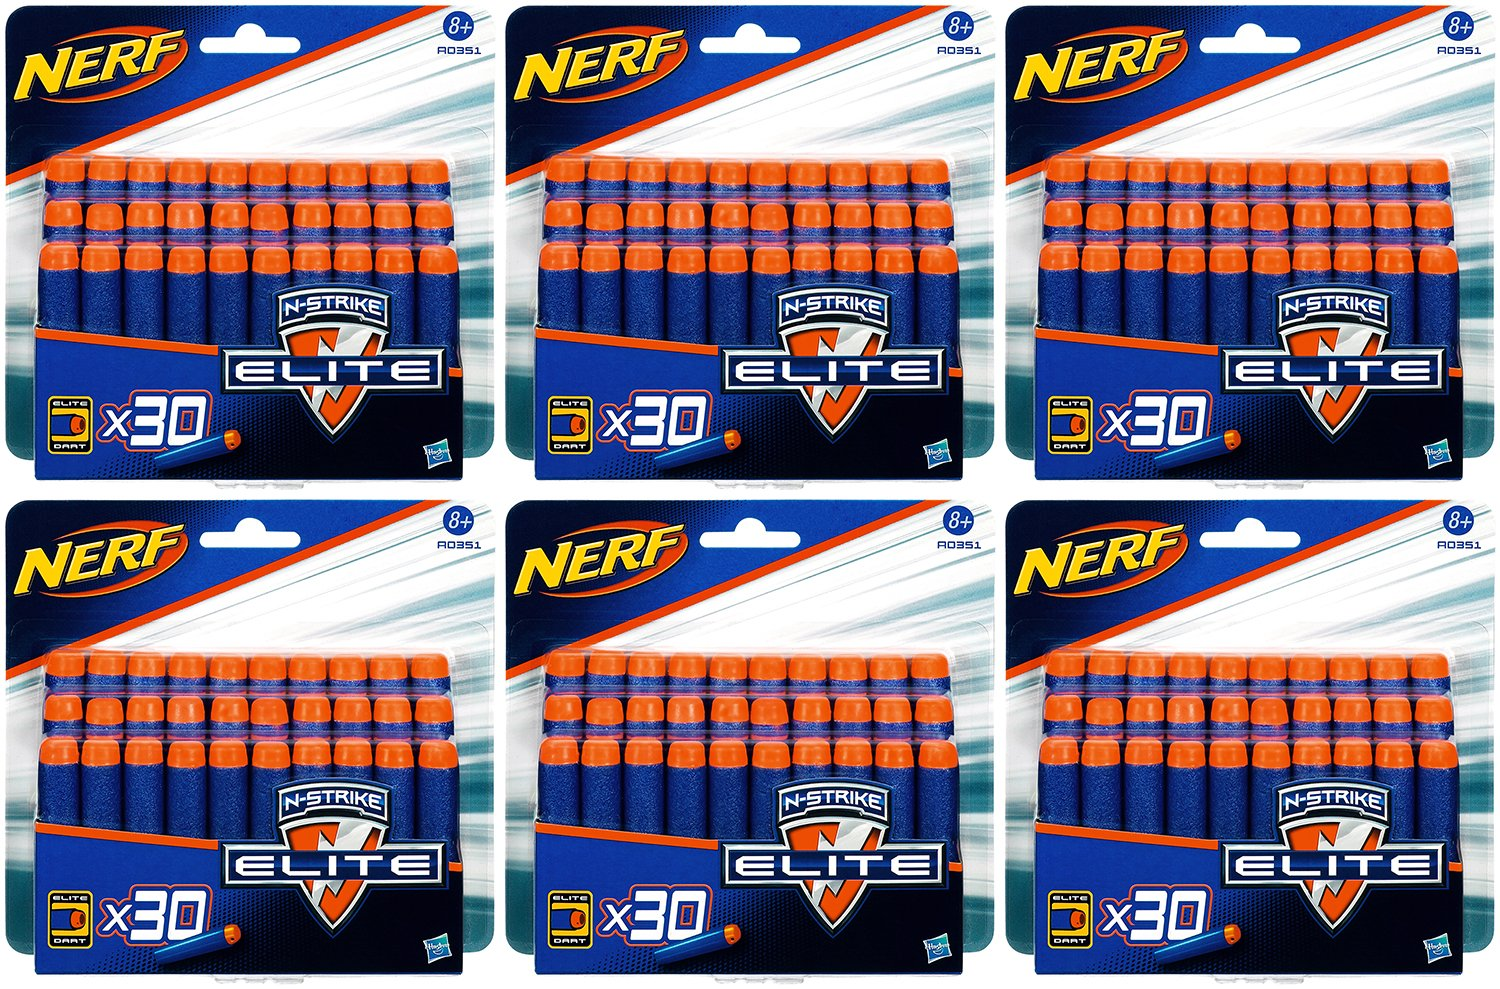 Nerf N-Strike Elite Clip System Darts 180er Pack